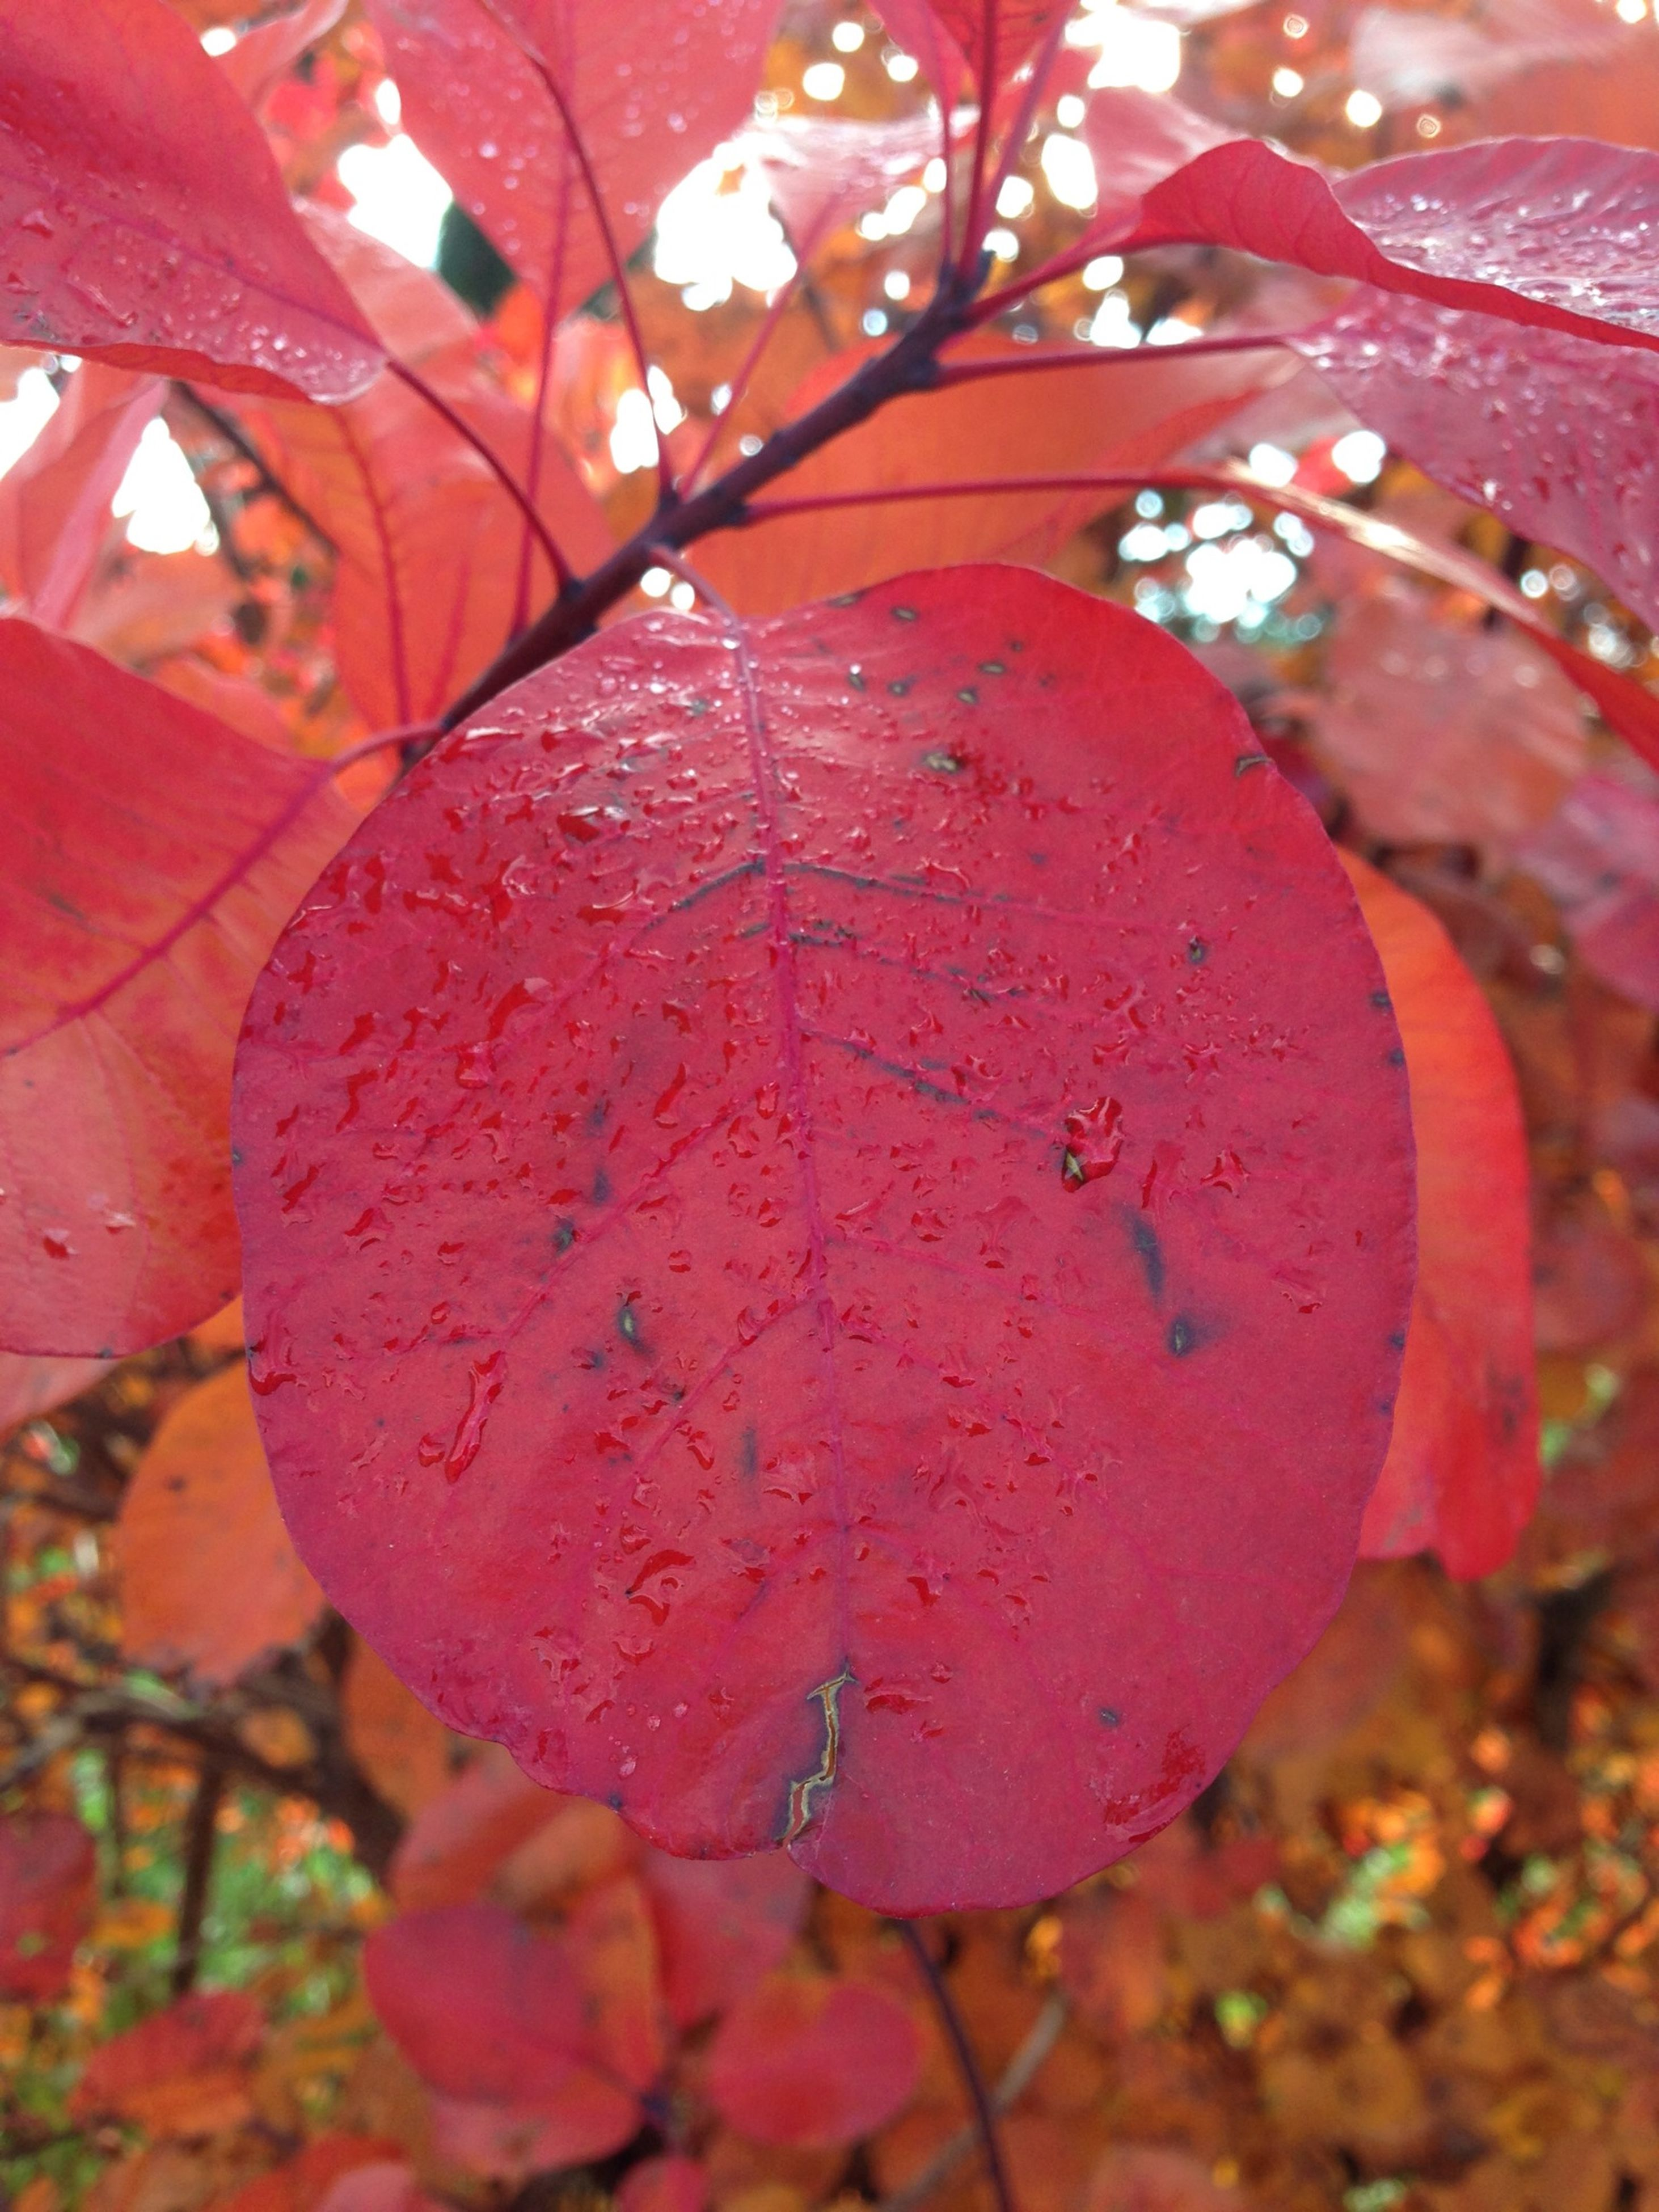 red, growth, close-up, freshness, focus on foreground, nature, tree, season, beauty in nature, leaf, branch, fragility, selective focus, day, outdoors, no people, autumn, flower, plant, drop